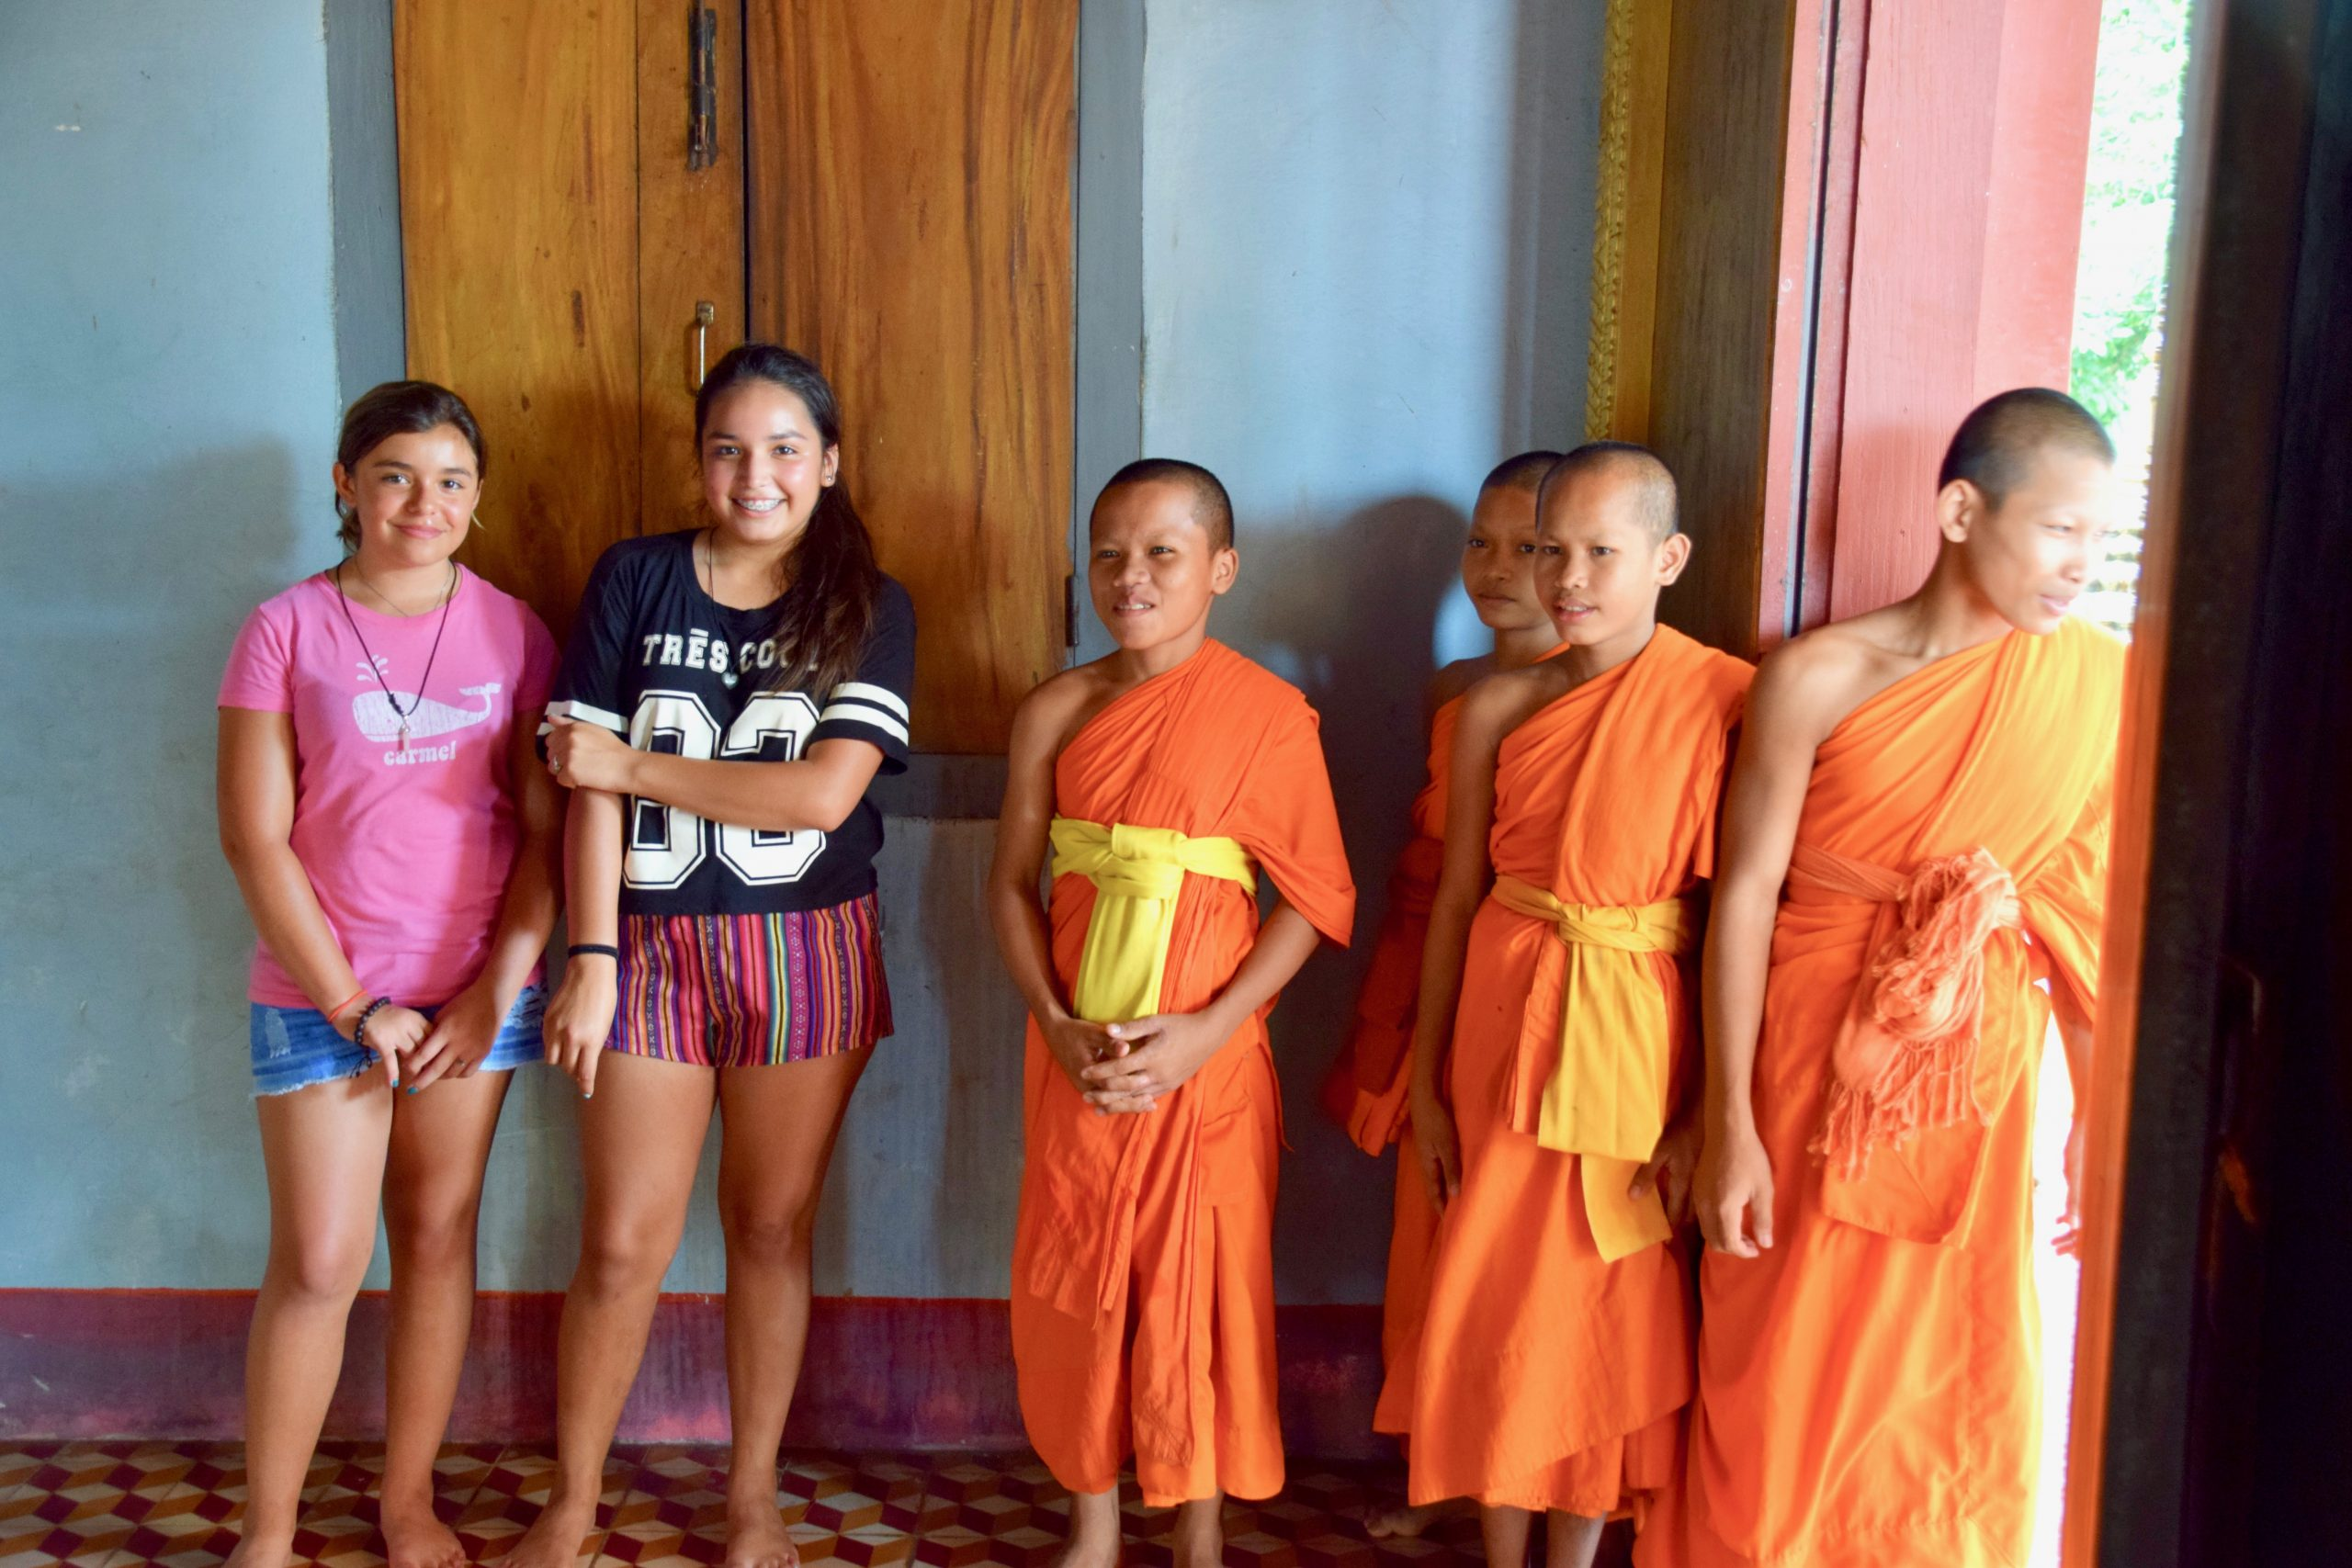 American girls with young monks in robes at Buddhist monastery in Siem Reap, Cambodia